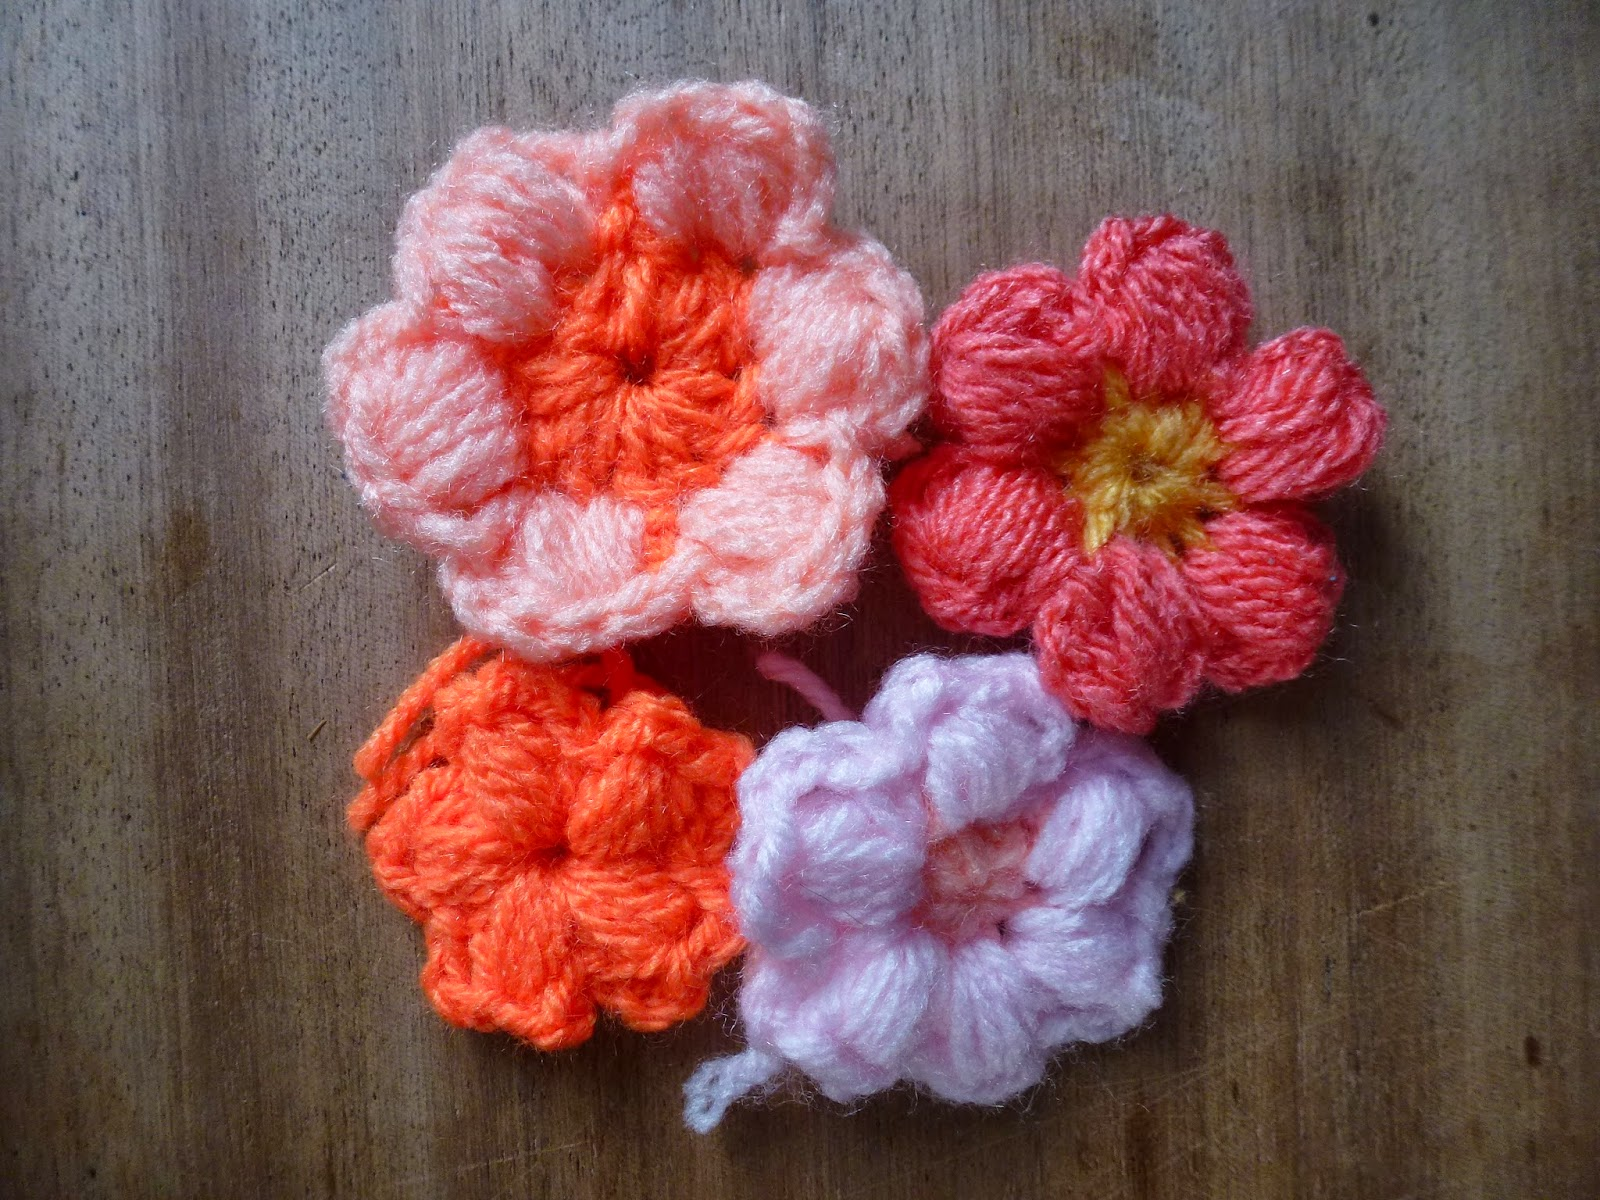 Crochet Flower Puff Pattern : Dancing Moth: A Flower a Day: Crochet Puff Stitch Flowers